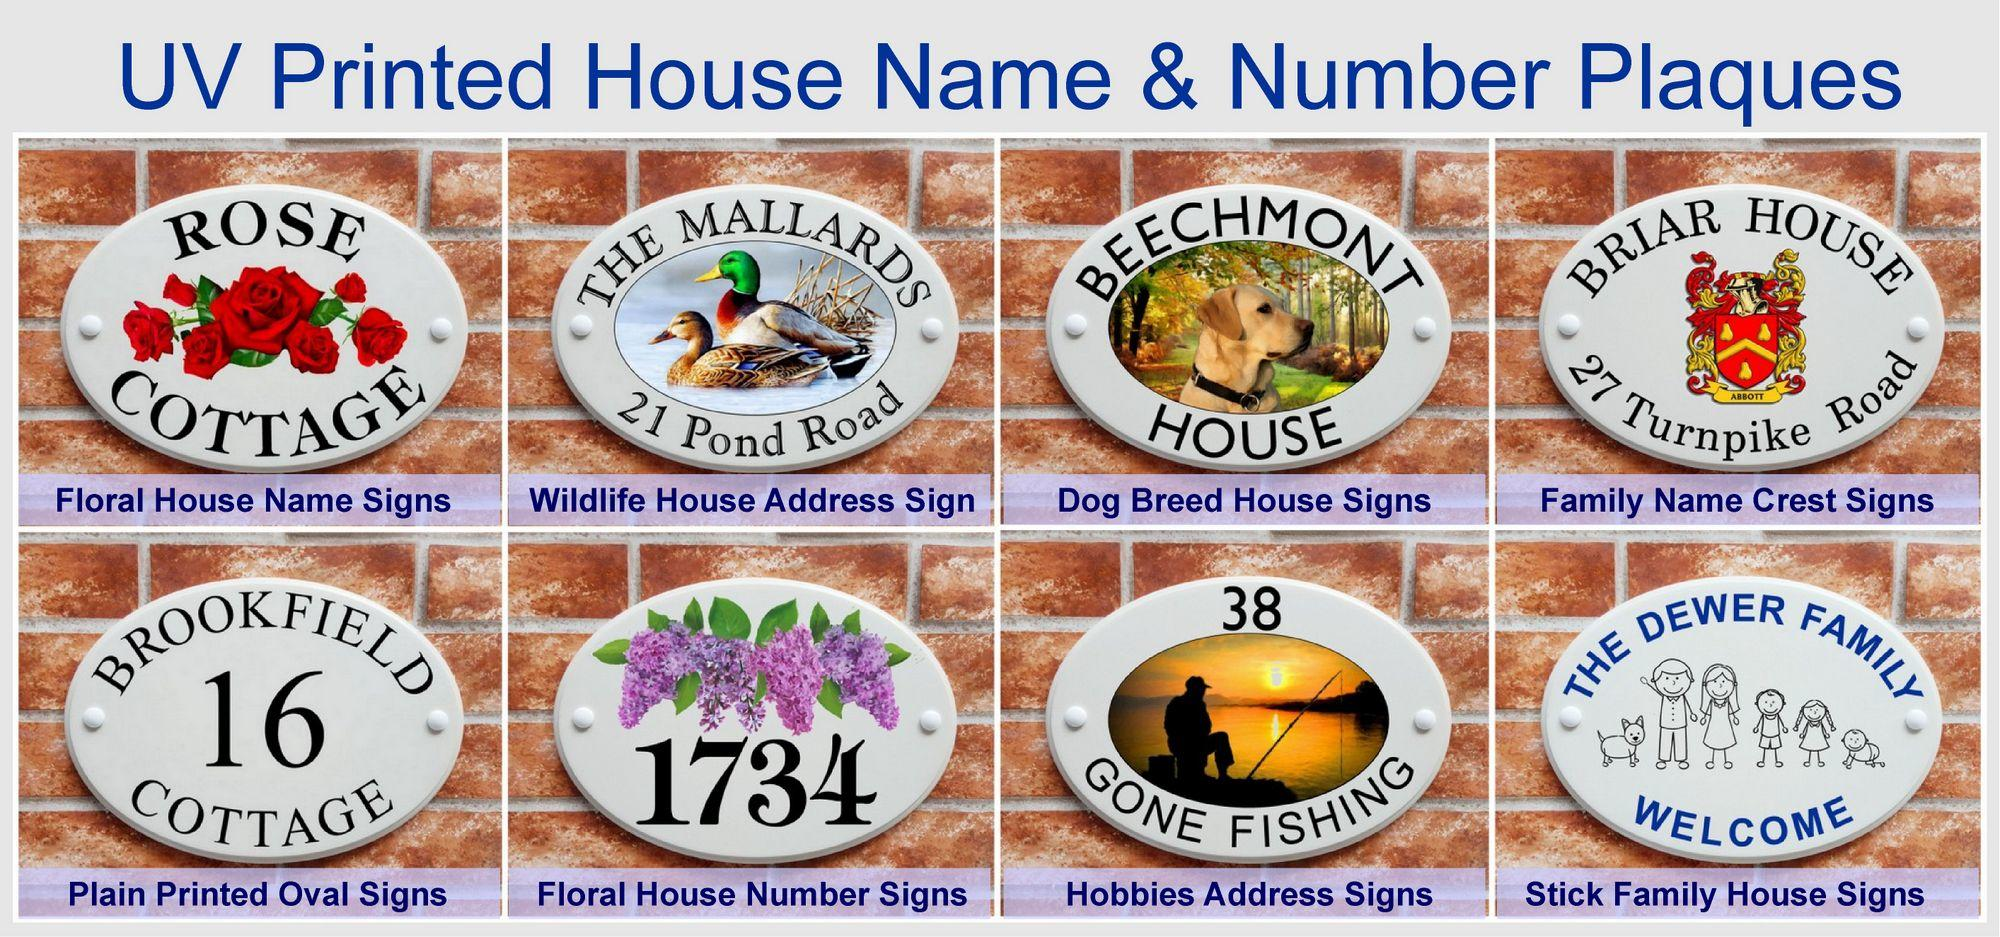 UV ink printed house name & number plaques